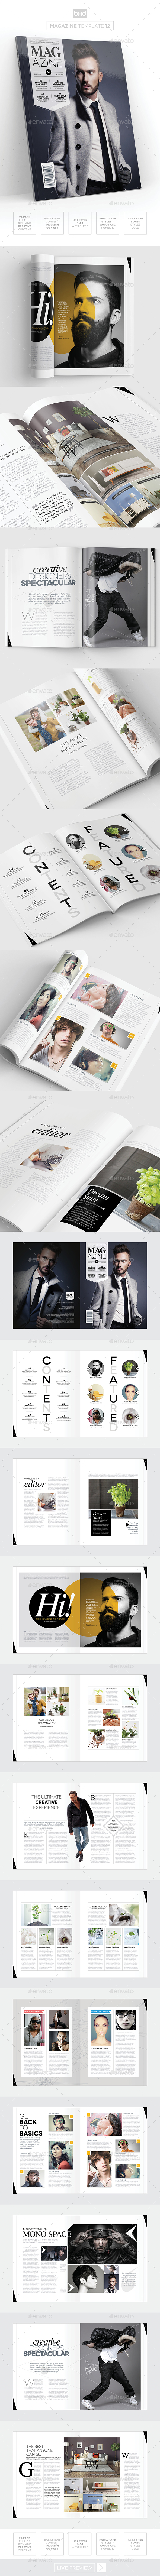 Magazine Template - InDesign 24 Page Layout V12 - Magazines Print Templates